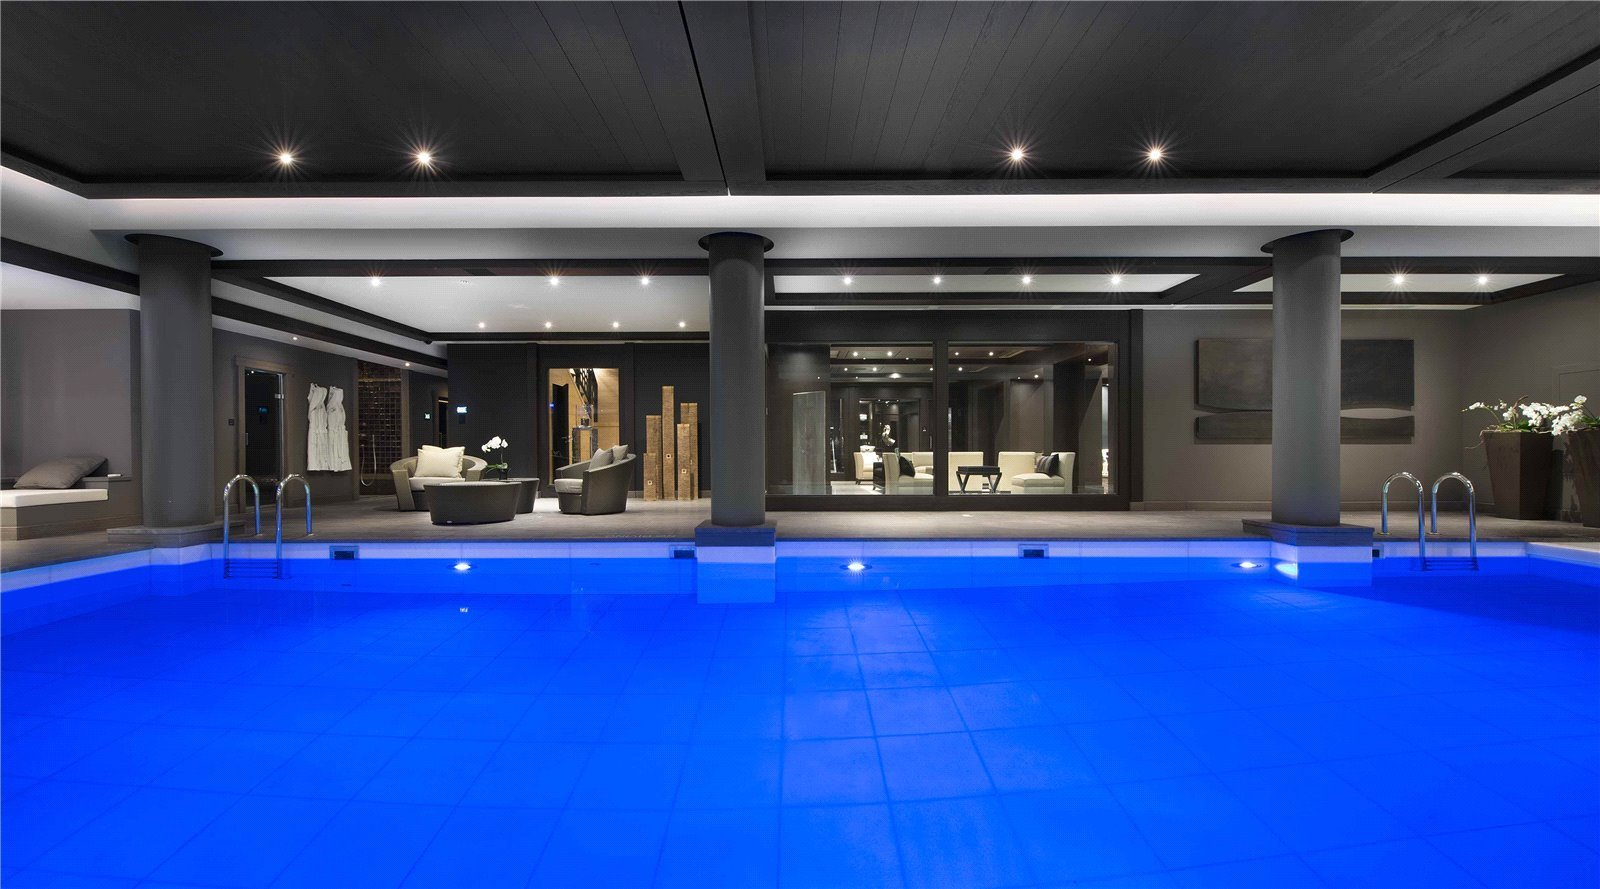 Rental Villa Courchevel Le Petit Palais is an exceptional ski in - ski out chalet, situated on the slopes of Bellecote ski slopes in Courchevel 1850.